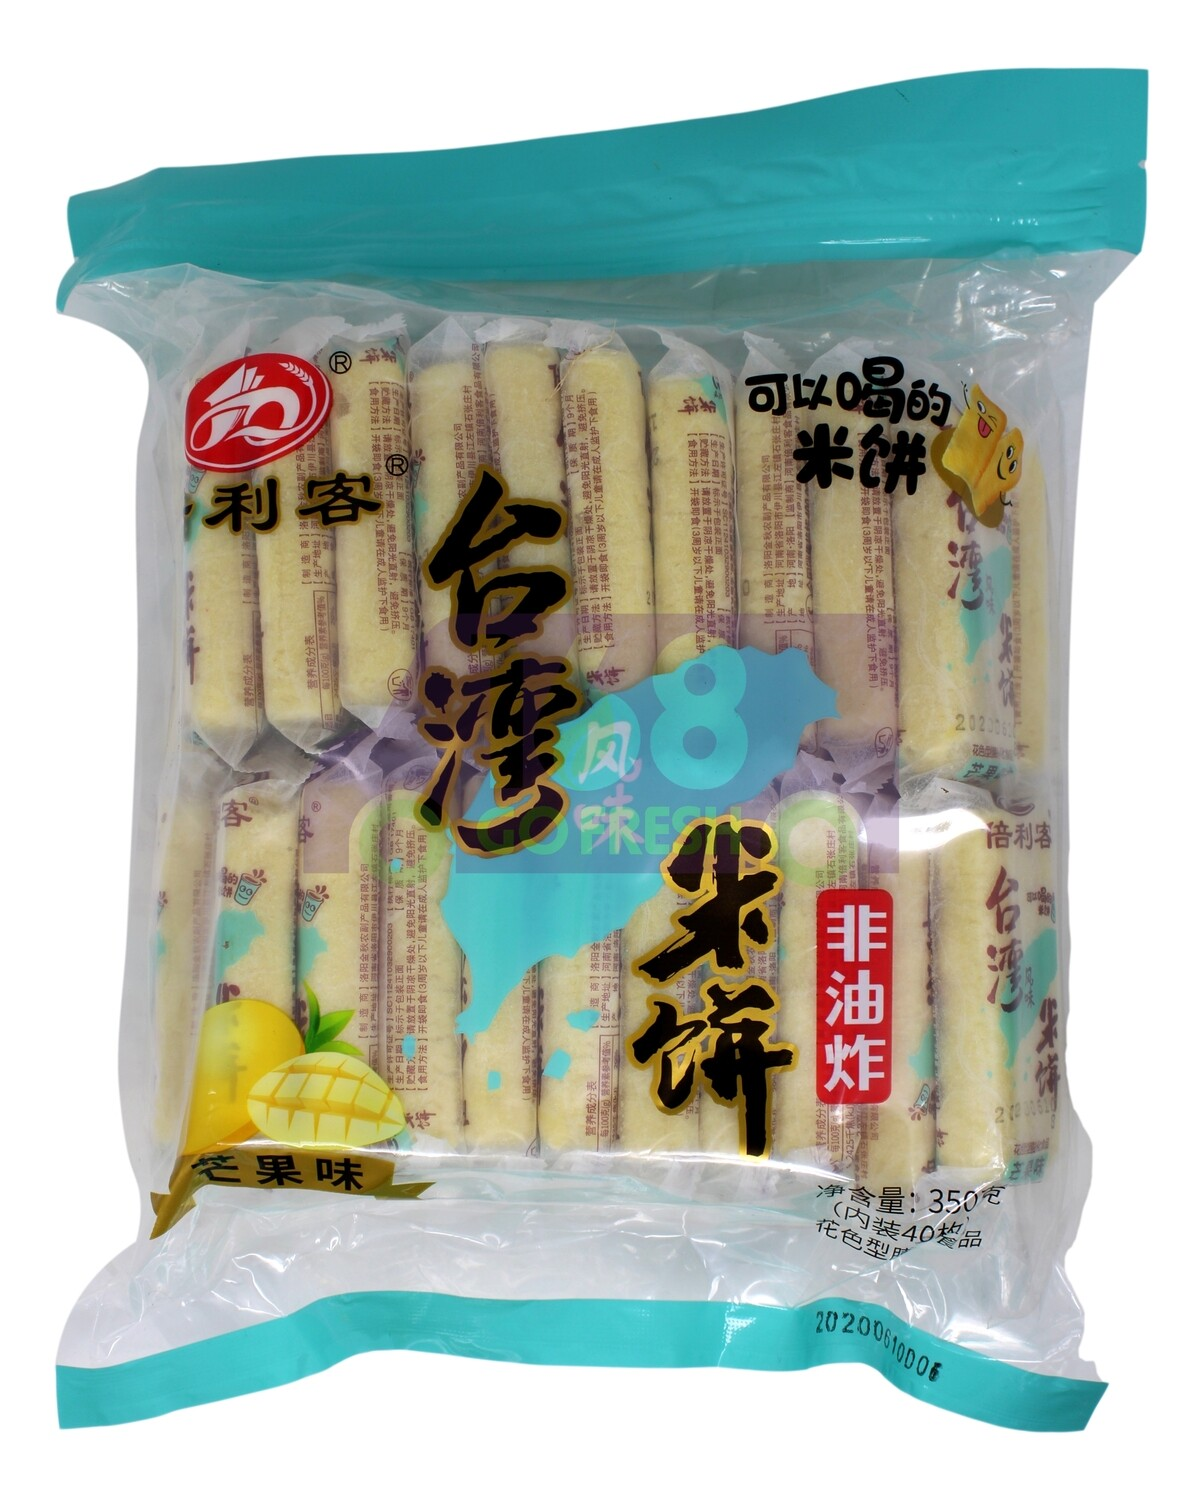 RICE CRACKERS  倍利客 台湾风味米饼 芒果味(350G)